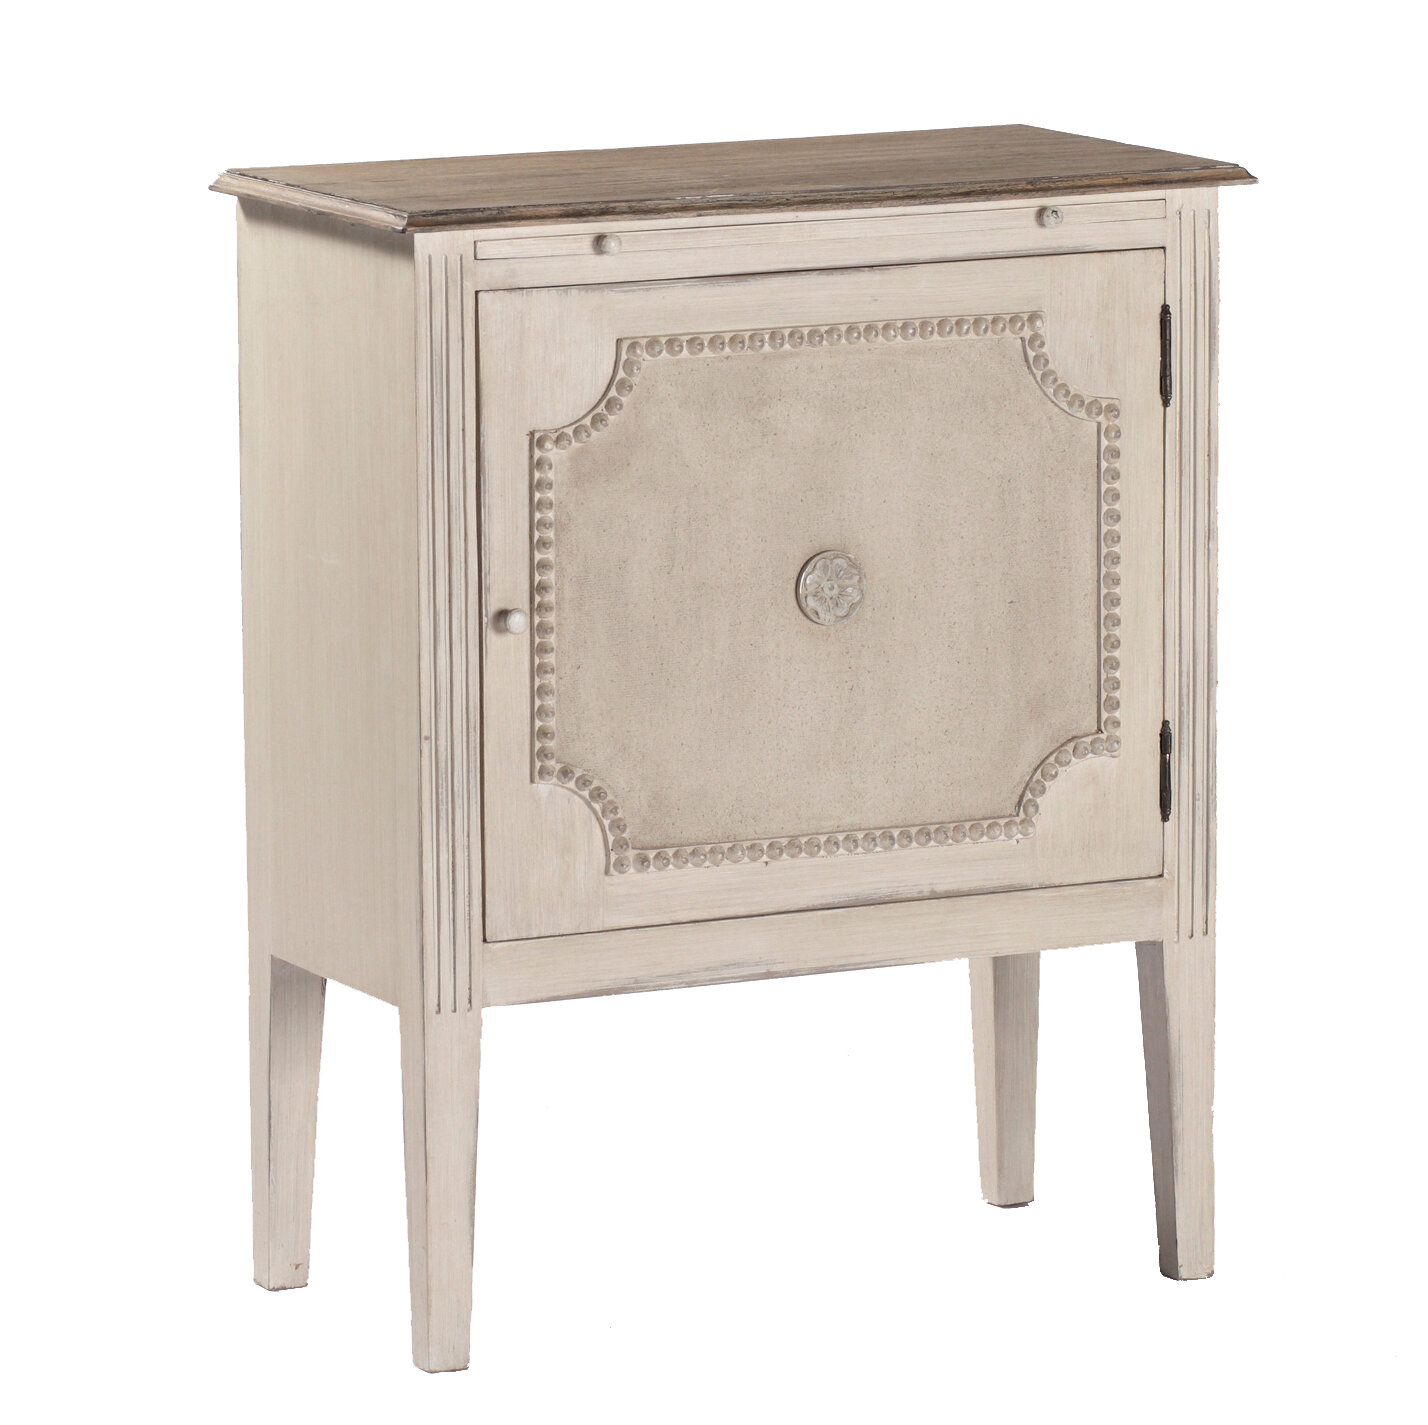 Superbe Gabby Landry End Table With Storage | Wayfair